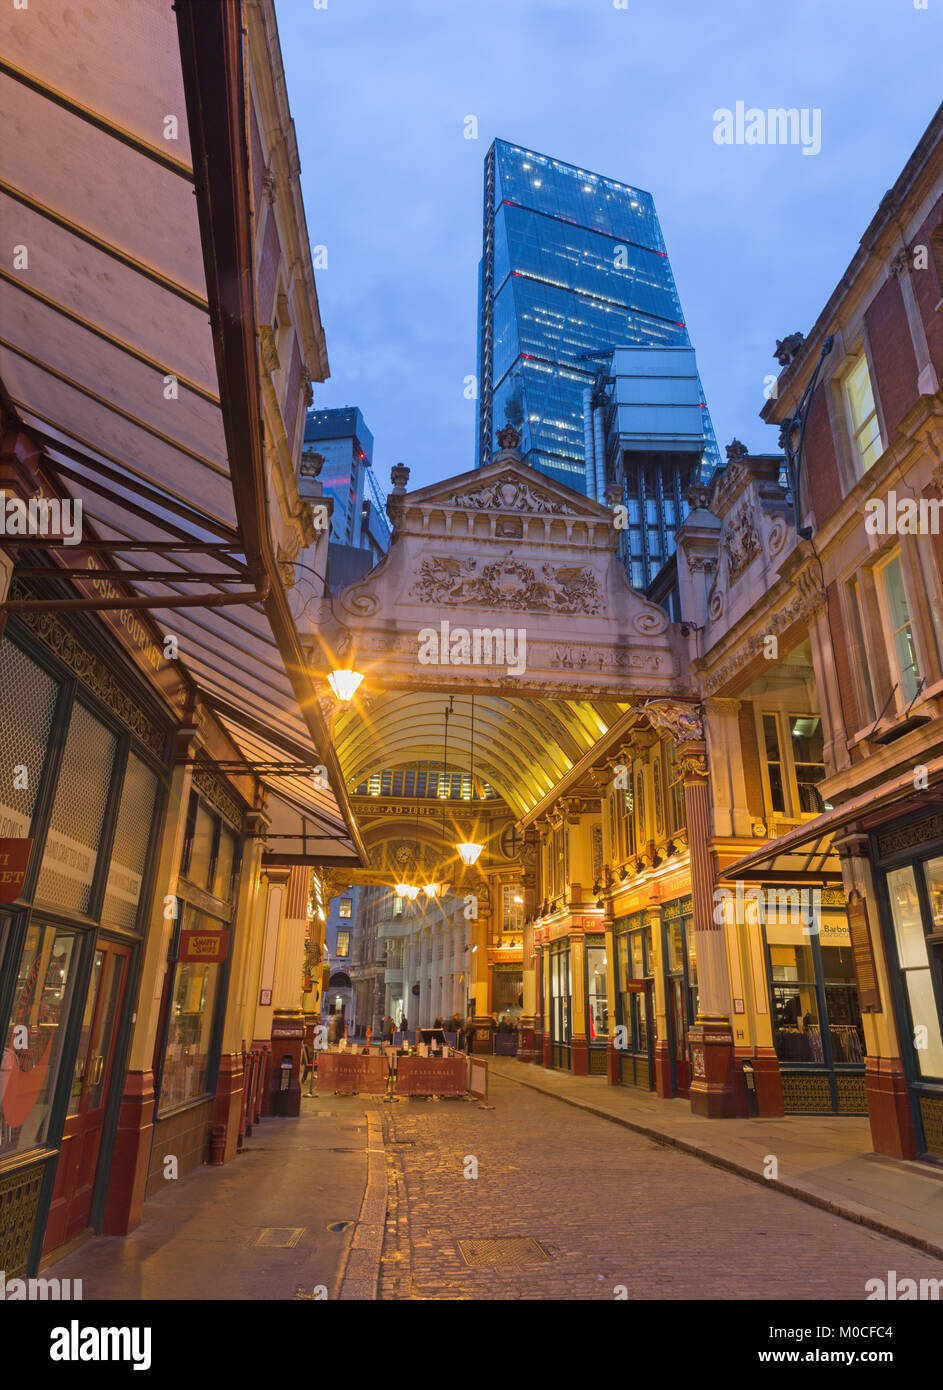 LONDON, GREAT BRITAIN - SEPTEMBER 18, 2017: The Leadenhall market and Leadenhall tower at dusk. - Stock Image